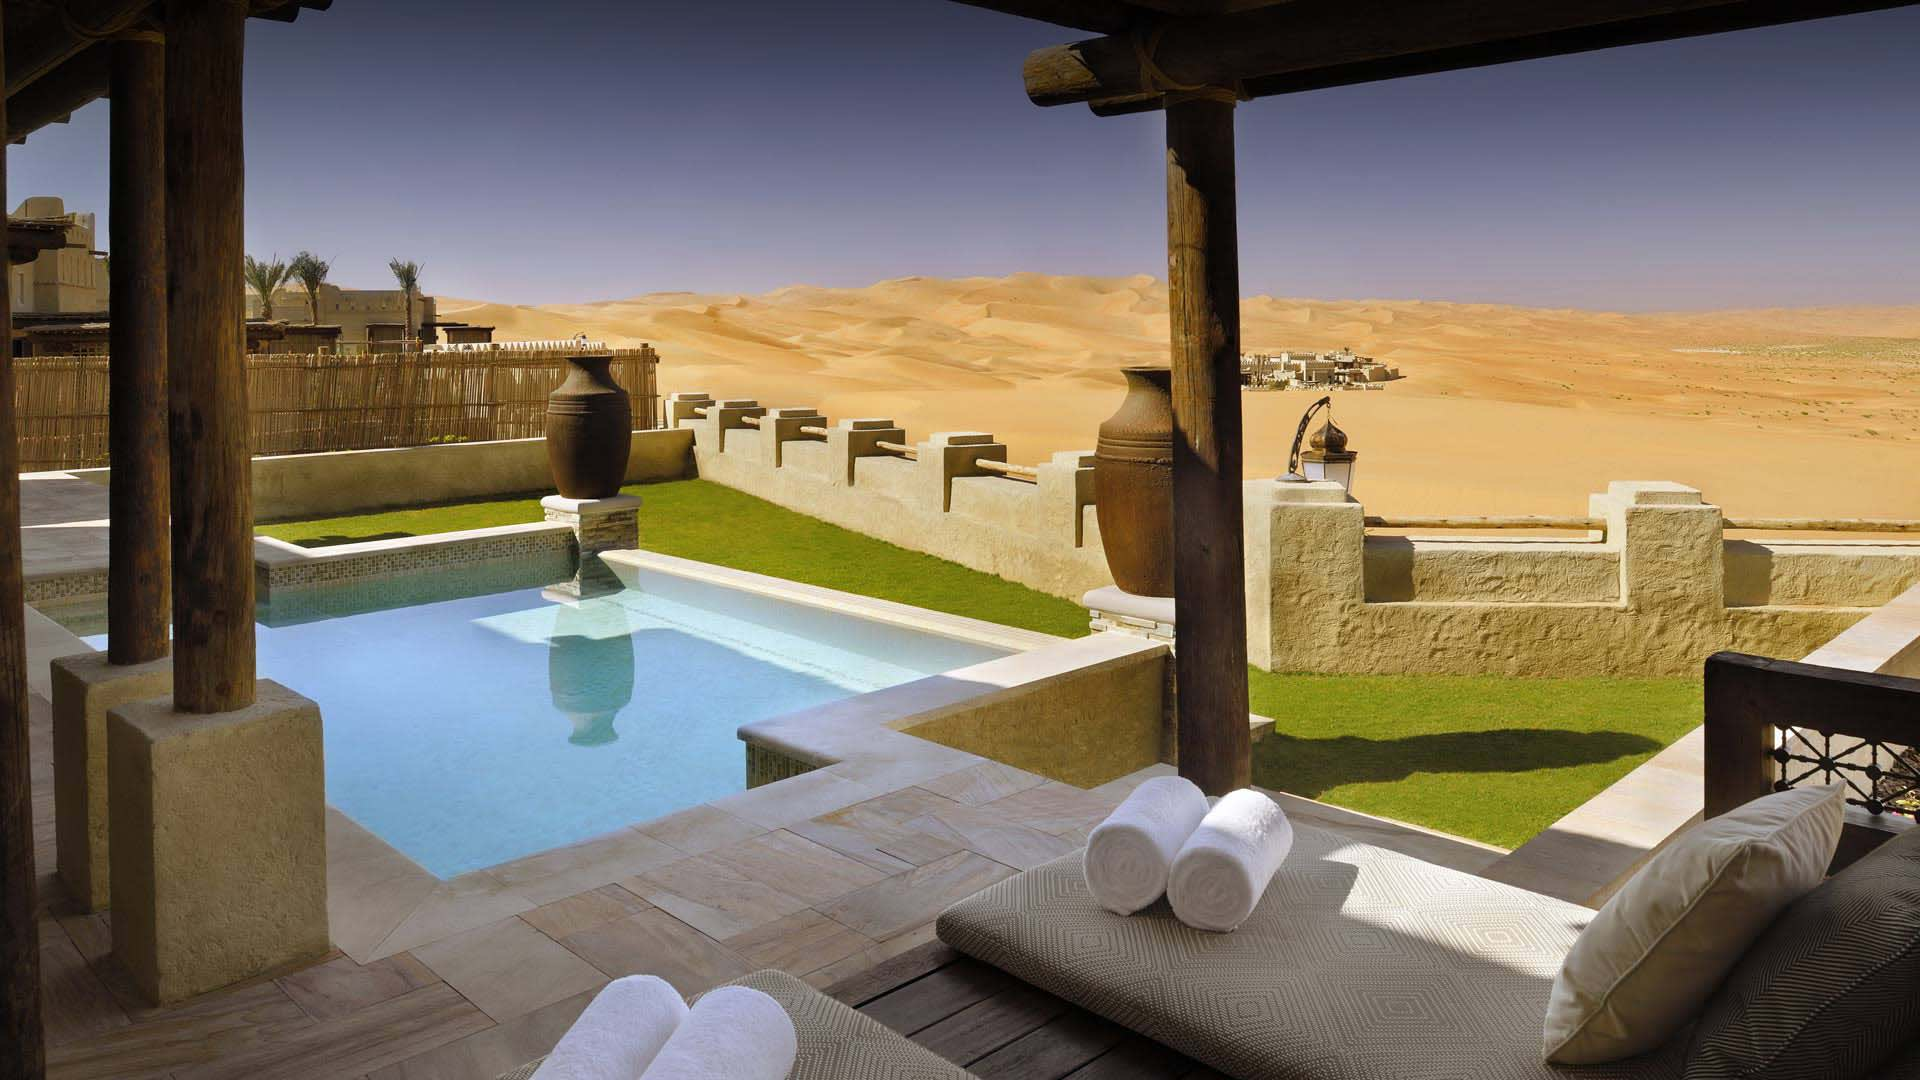 https://assets.anantara.com/image/upload/q_auto/media/minor/anantara/images/qasr-al-sarab-desert-resort-by-anantara/the-resort/desktop-banner/qasr_al_sarab_by_anantara_private_pool_header_1920x1080.jpg